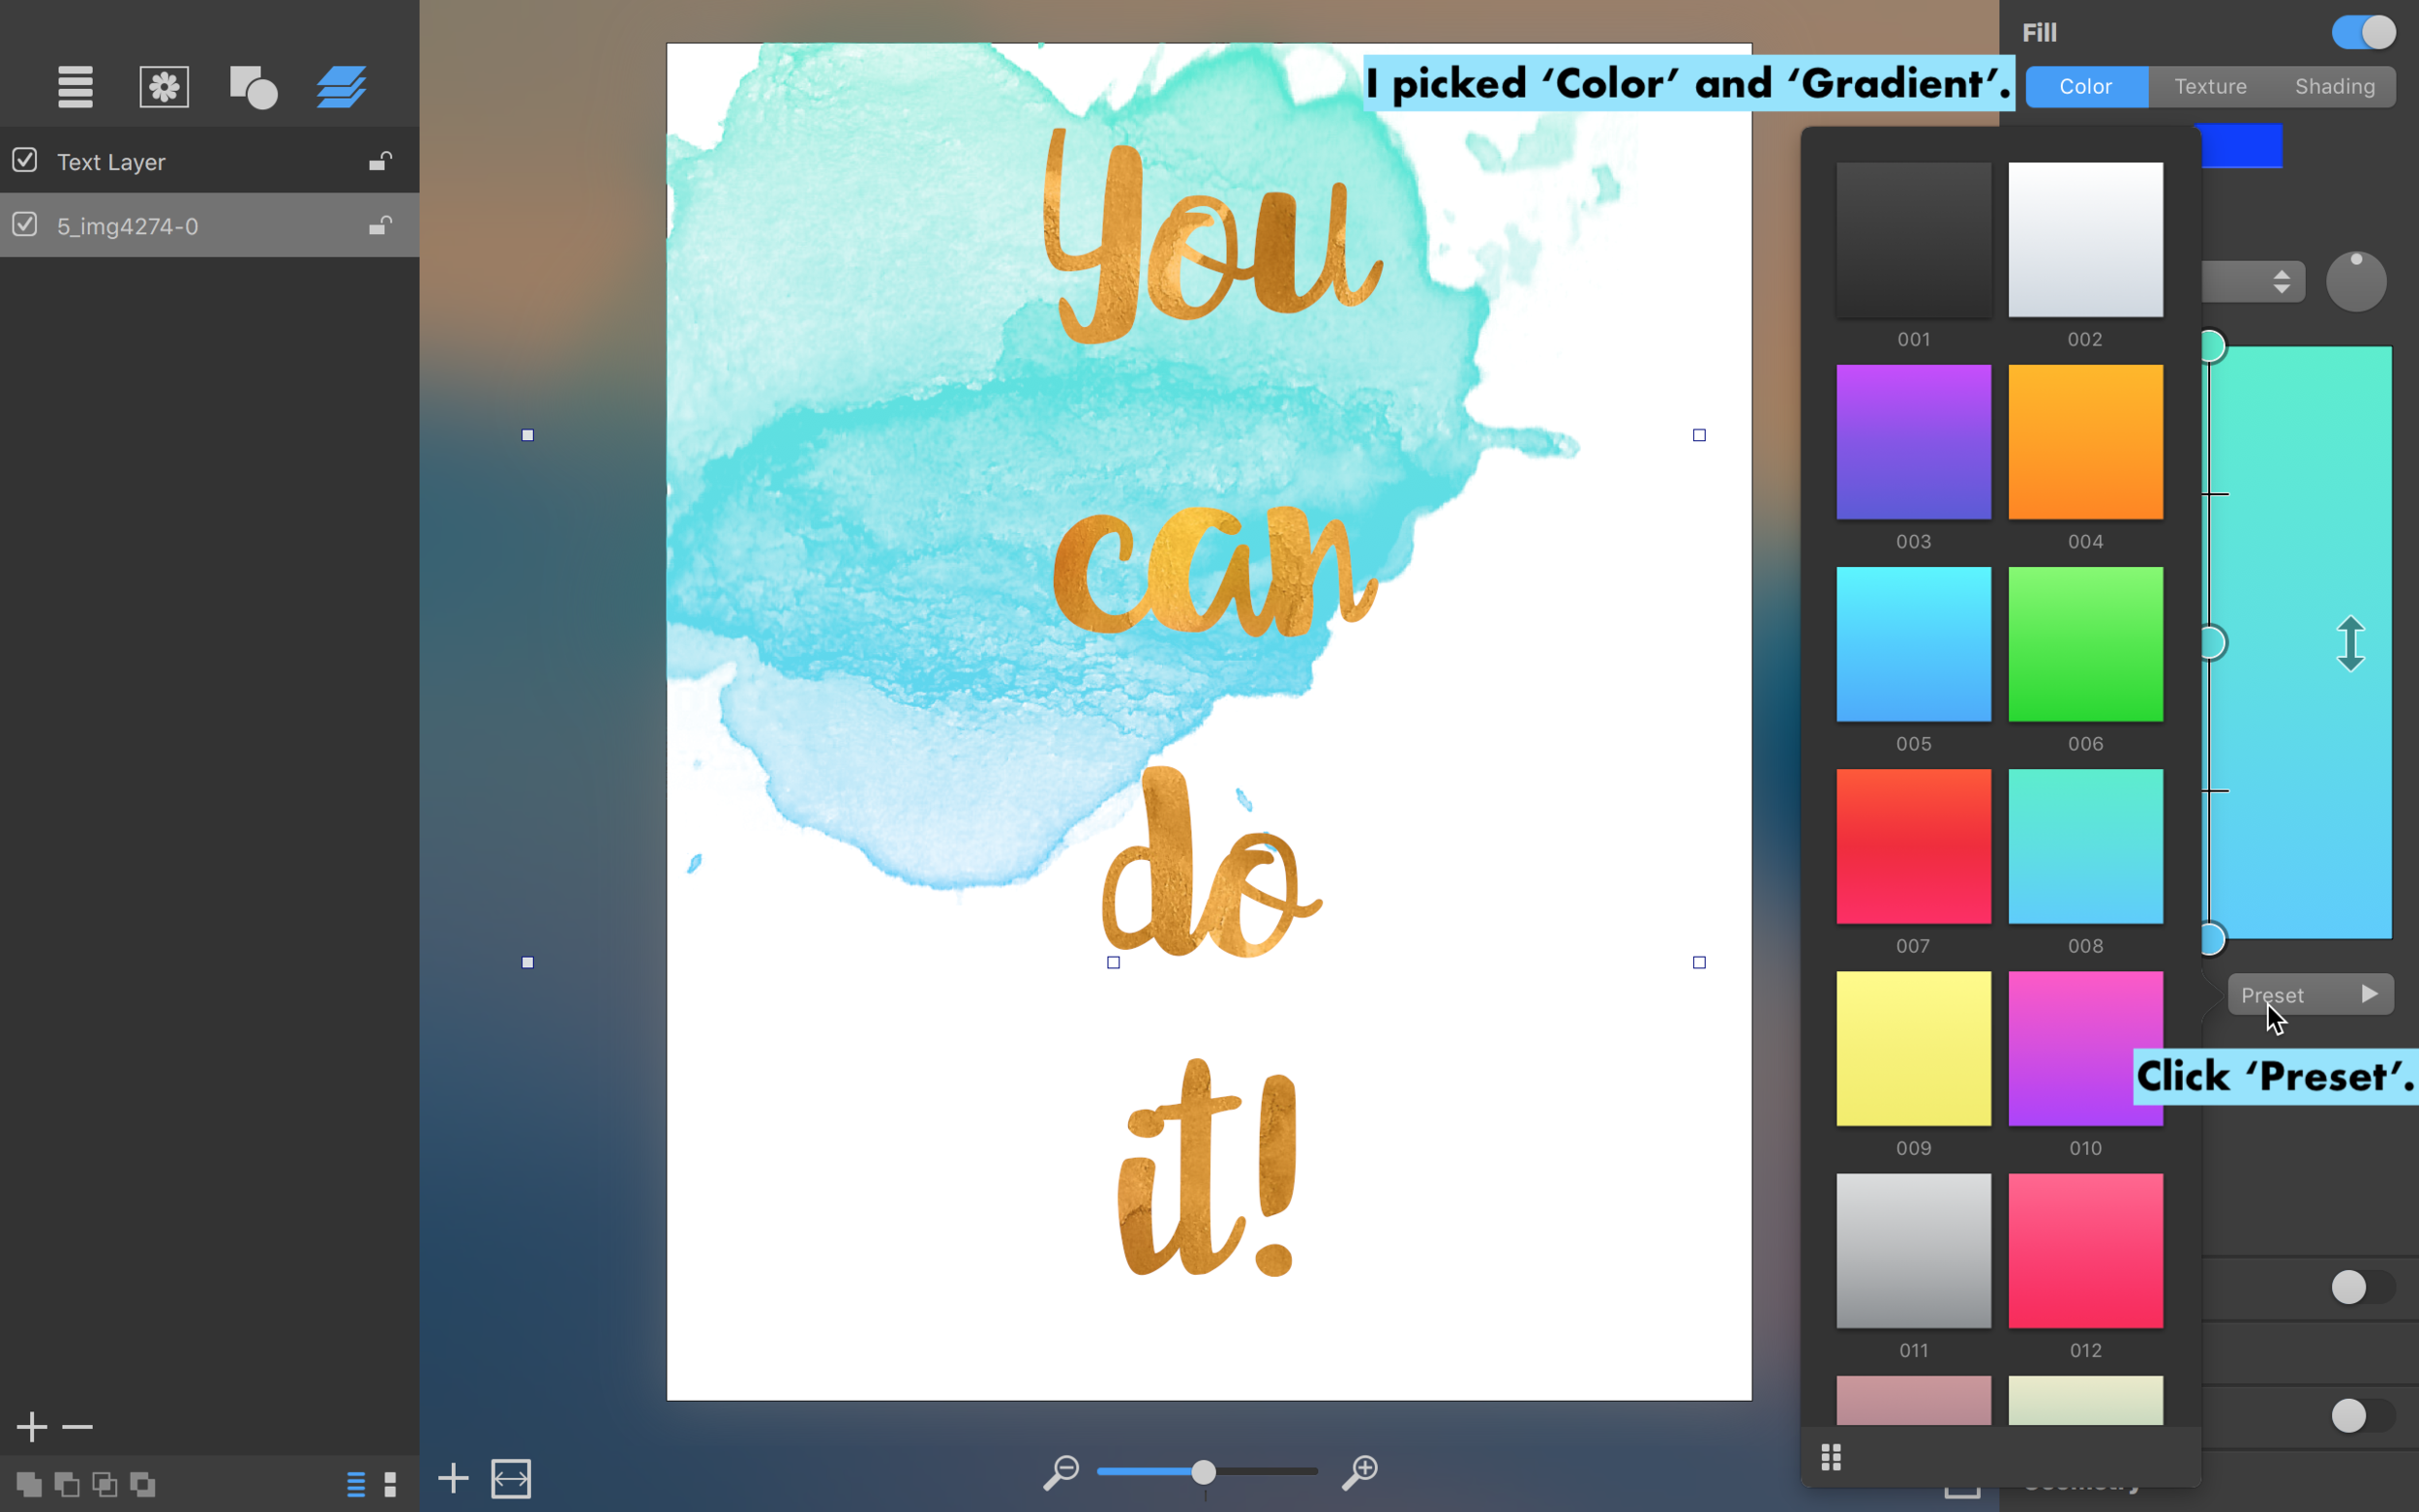 art-text-app-12th-step.png